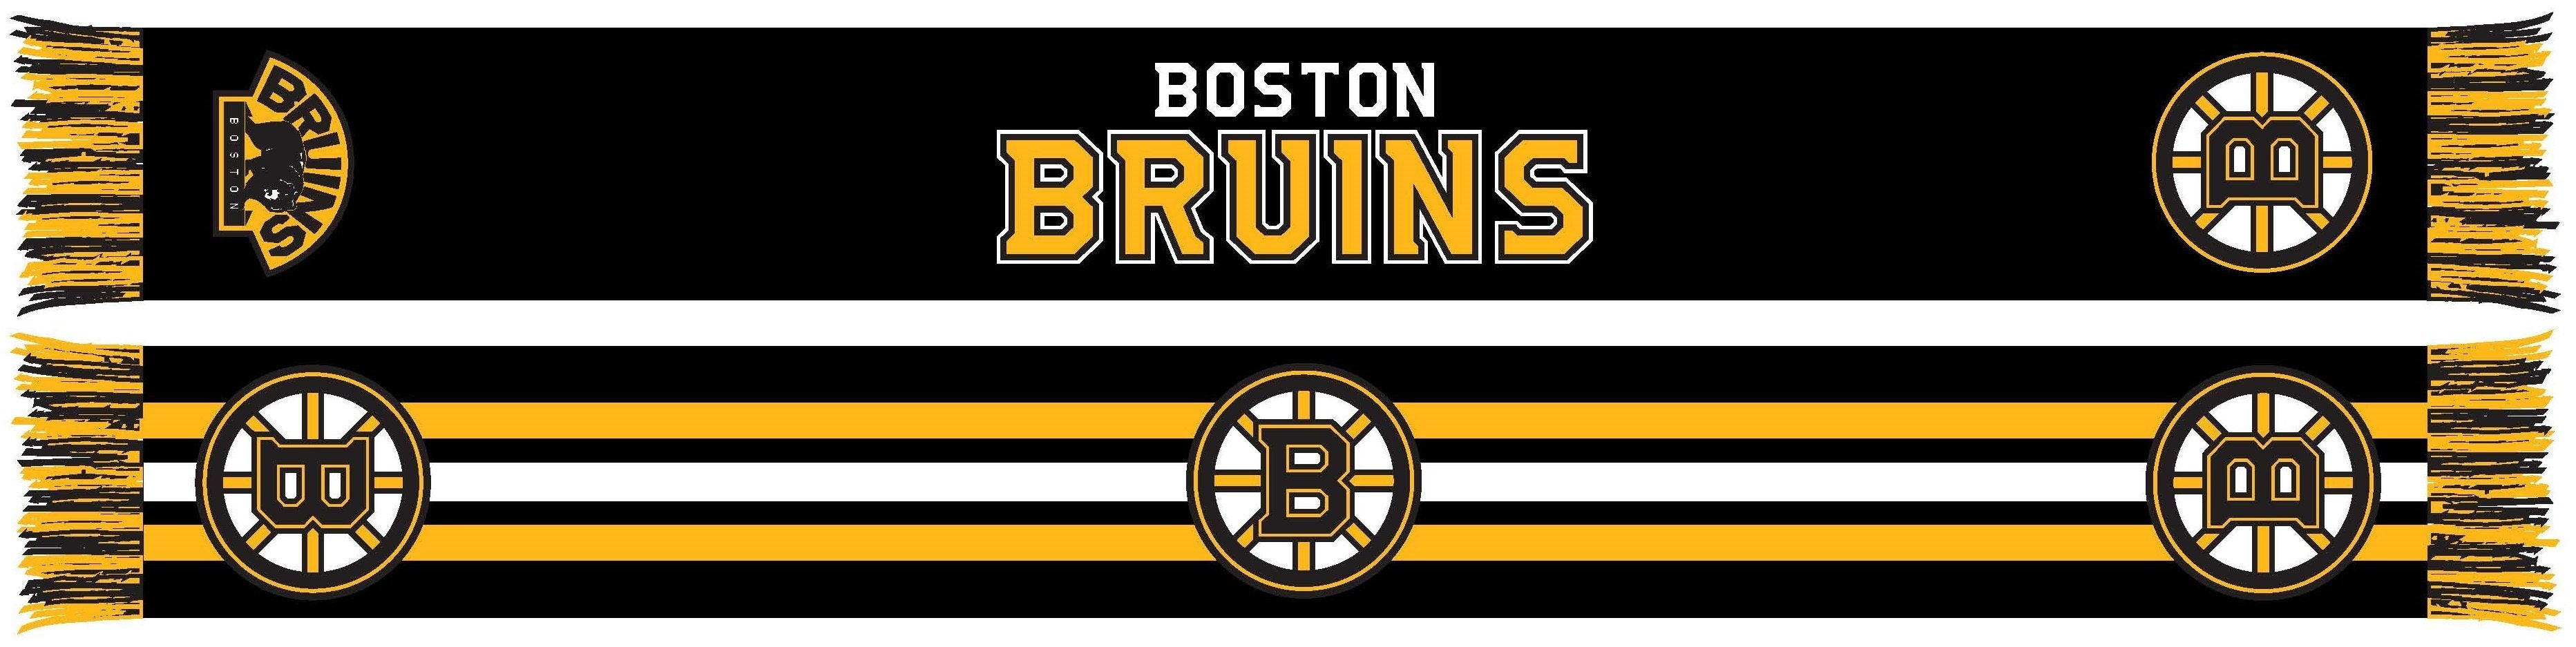 super popular a3dda 12d1d BOSTON BRUINS SCARF - Home Jersey